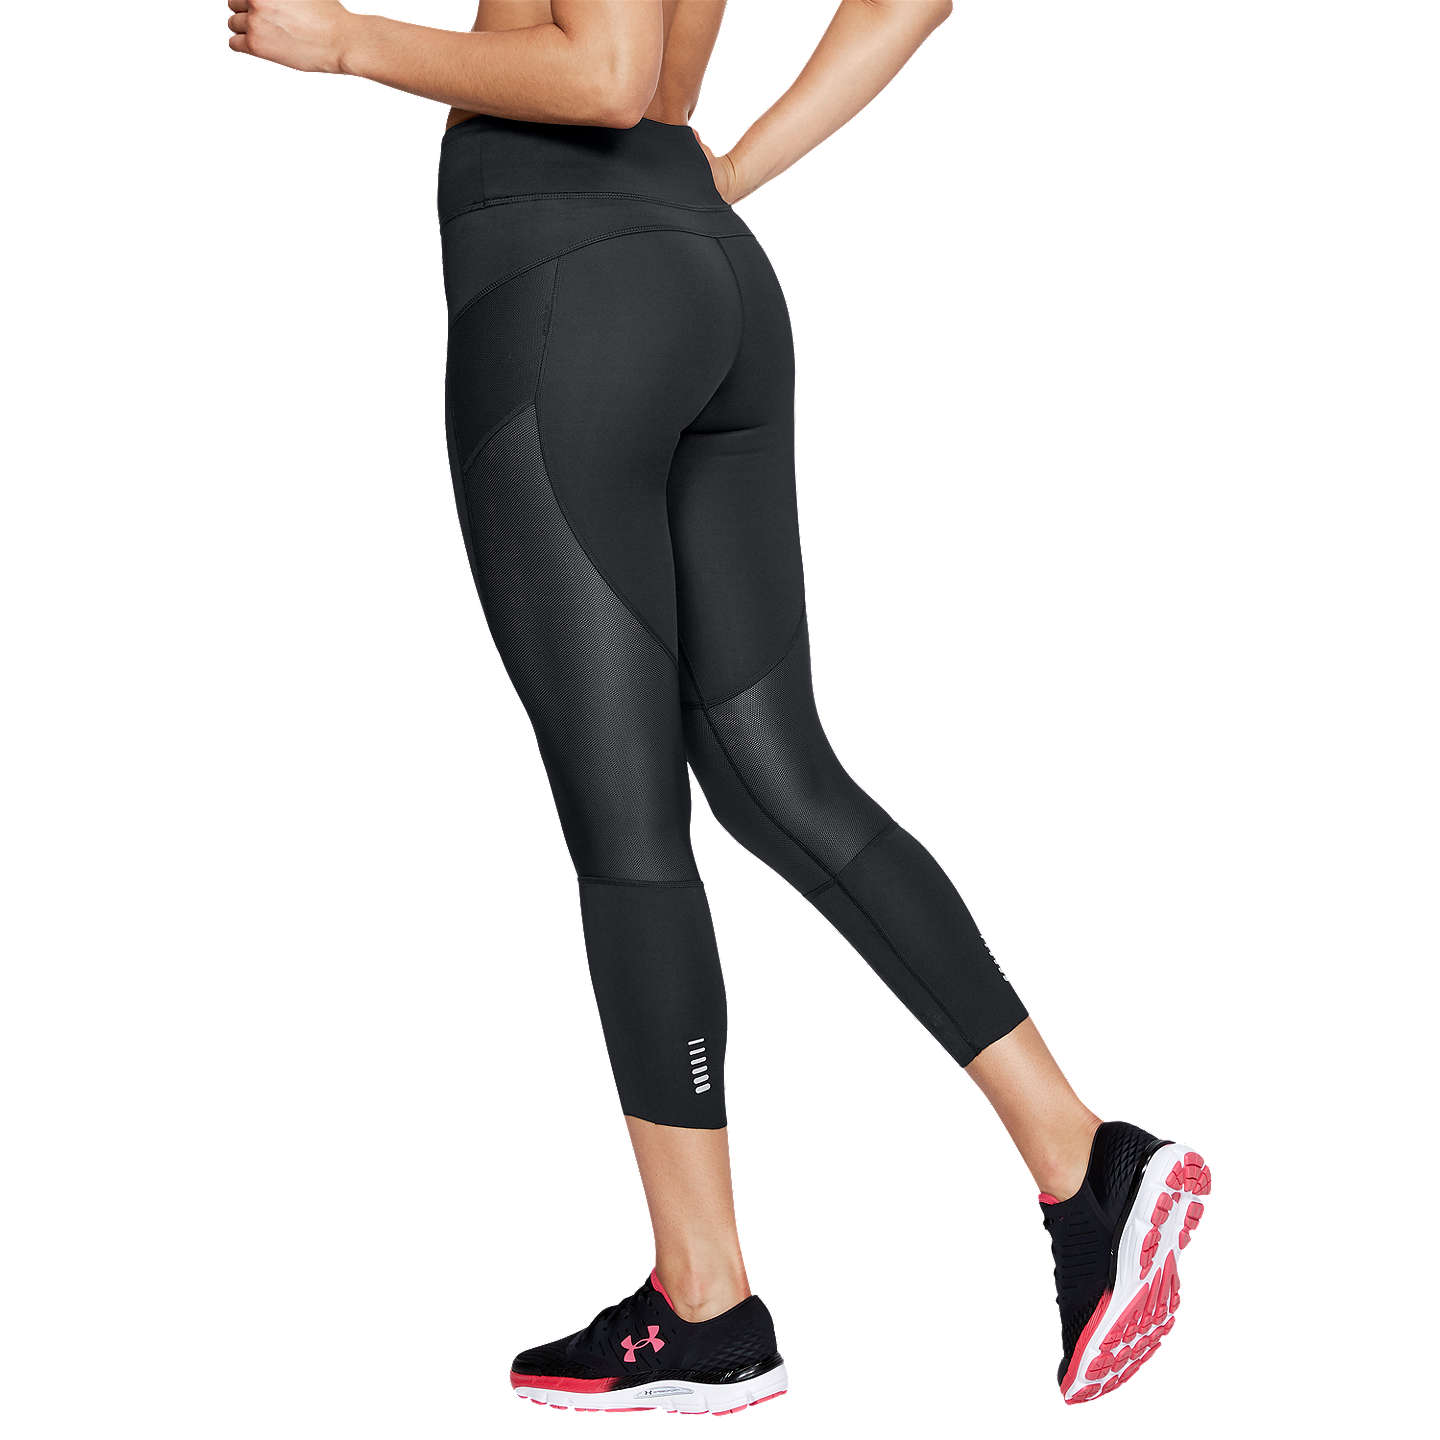 BuyUnder Armour Speed Pocket Running Cropped Tights, Black/Reflective Silver, XS Online at johnlewis.com